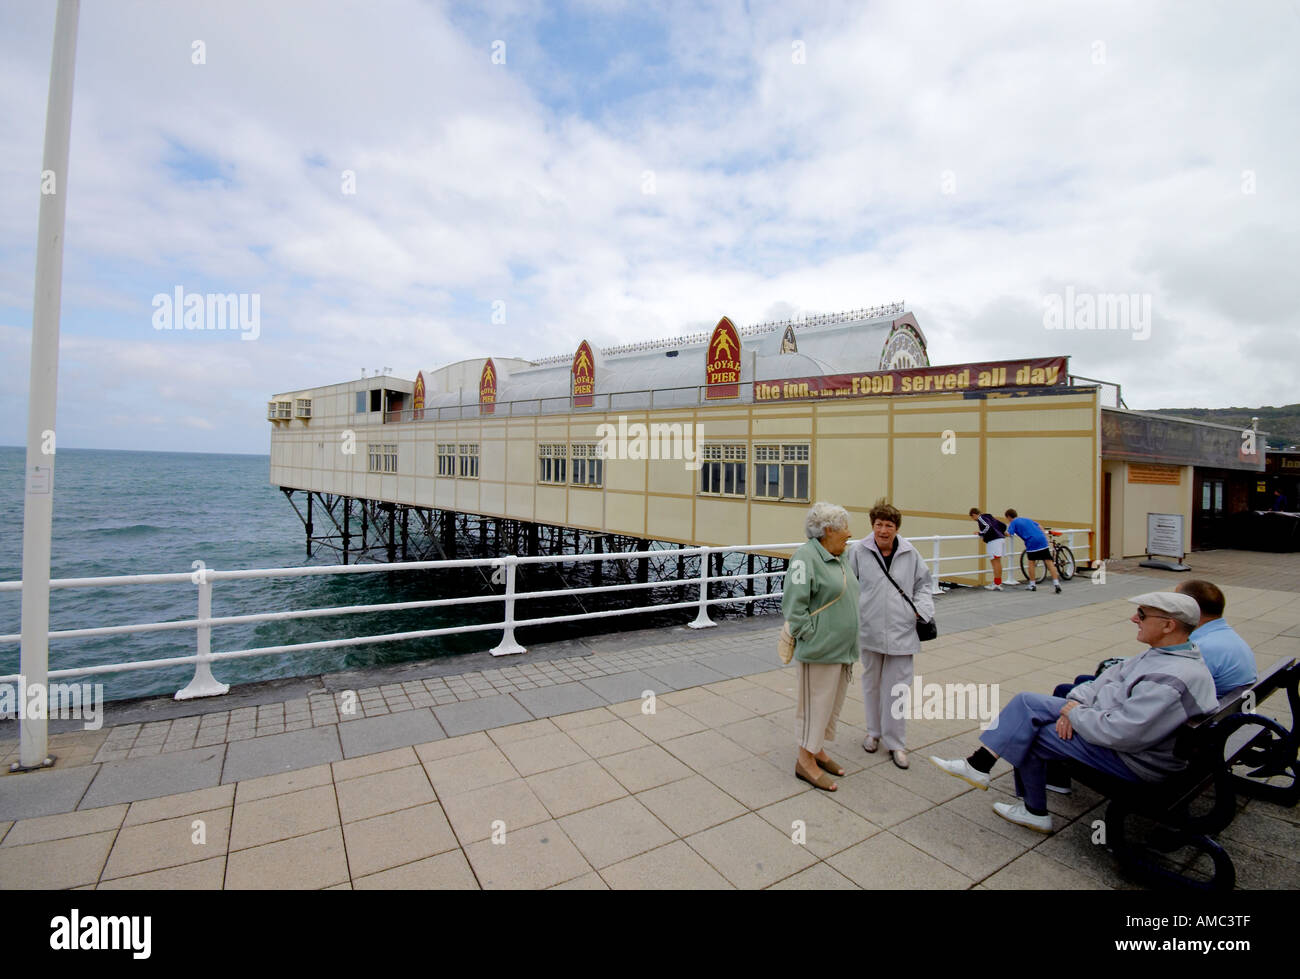 older people chat on the seafront of Aberystwyth with pier in background - Stock Image